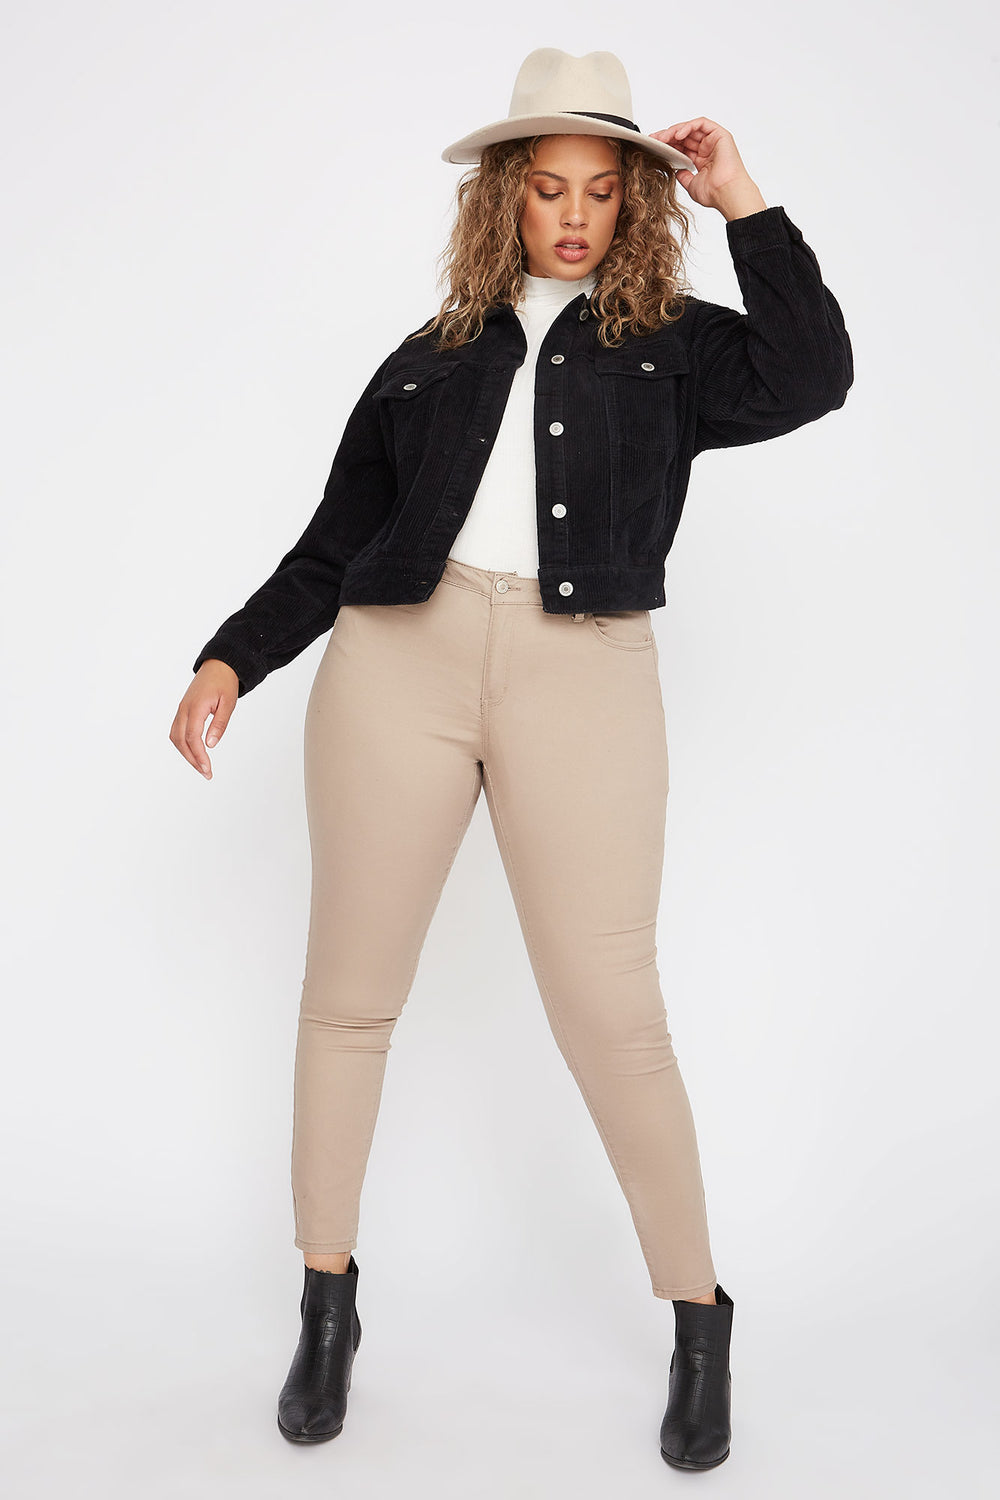 Plus Size Butt, I Love You Twill Stretch Push-Up Skinny Jean Khaki